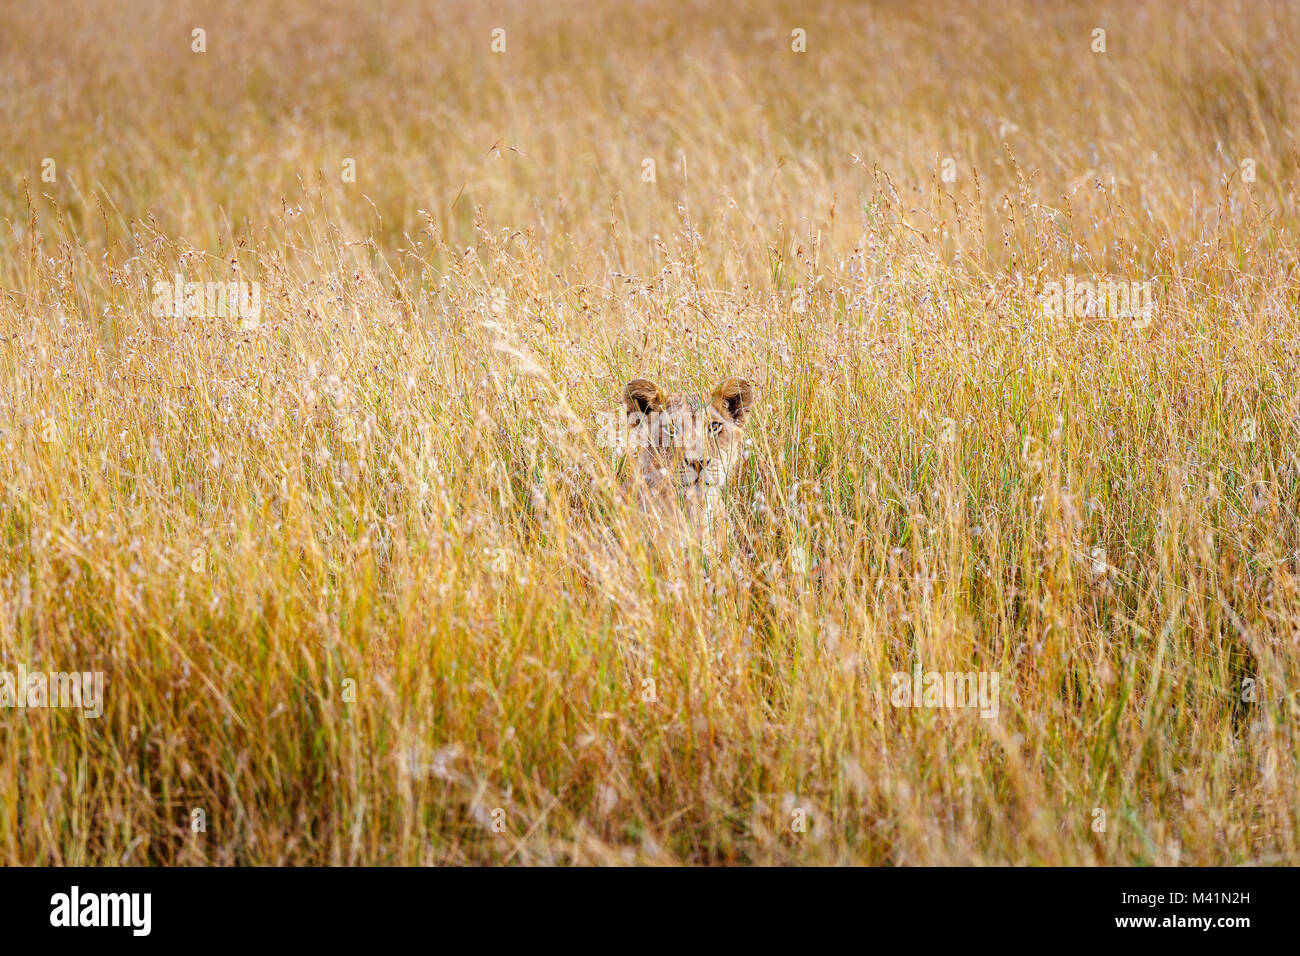 Big 5 apex predator hunting: Stealthy lioness (Panthera leo) concealed in long grass with an intense gaze stalking - Stock Image